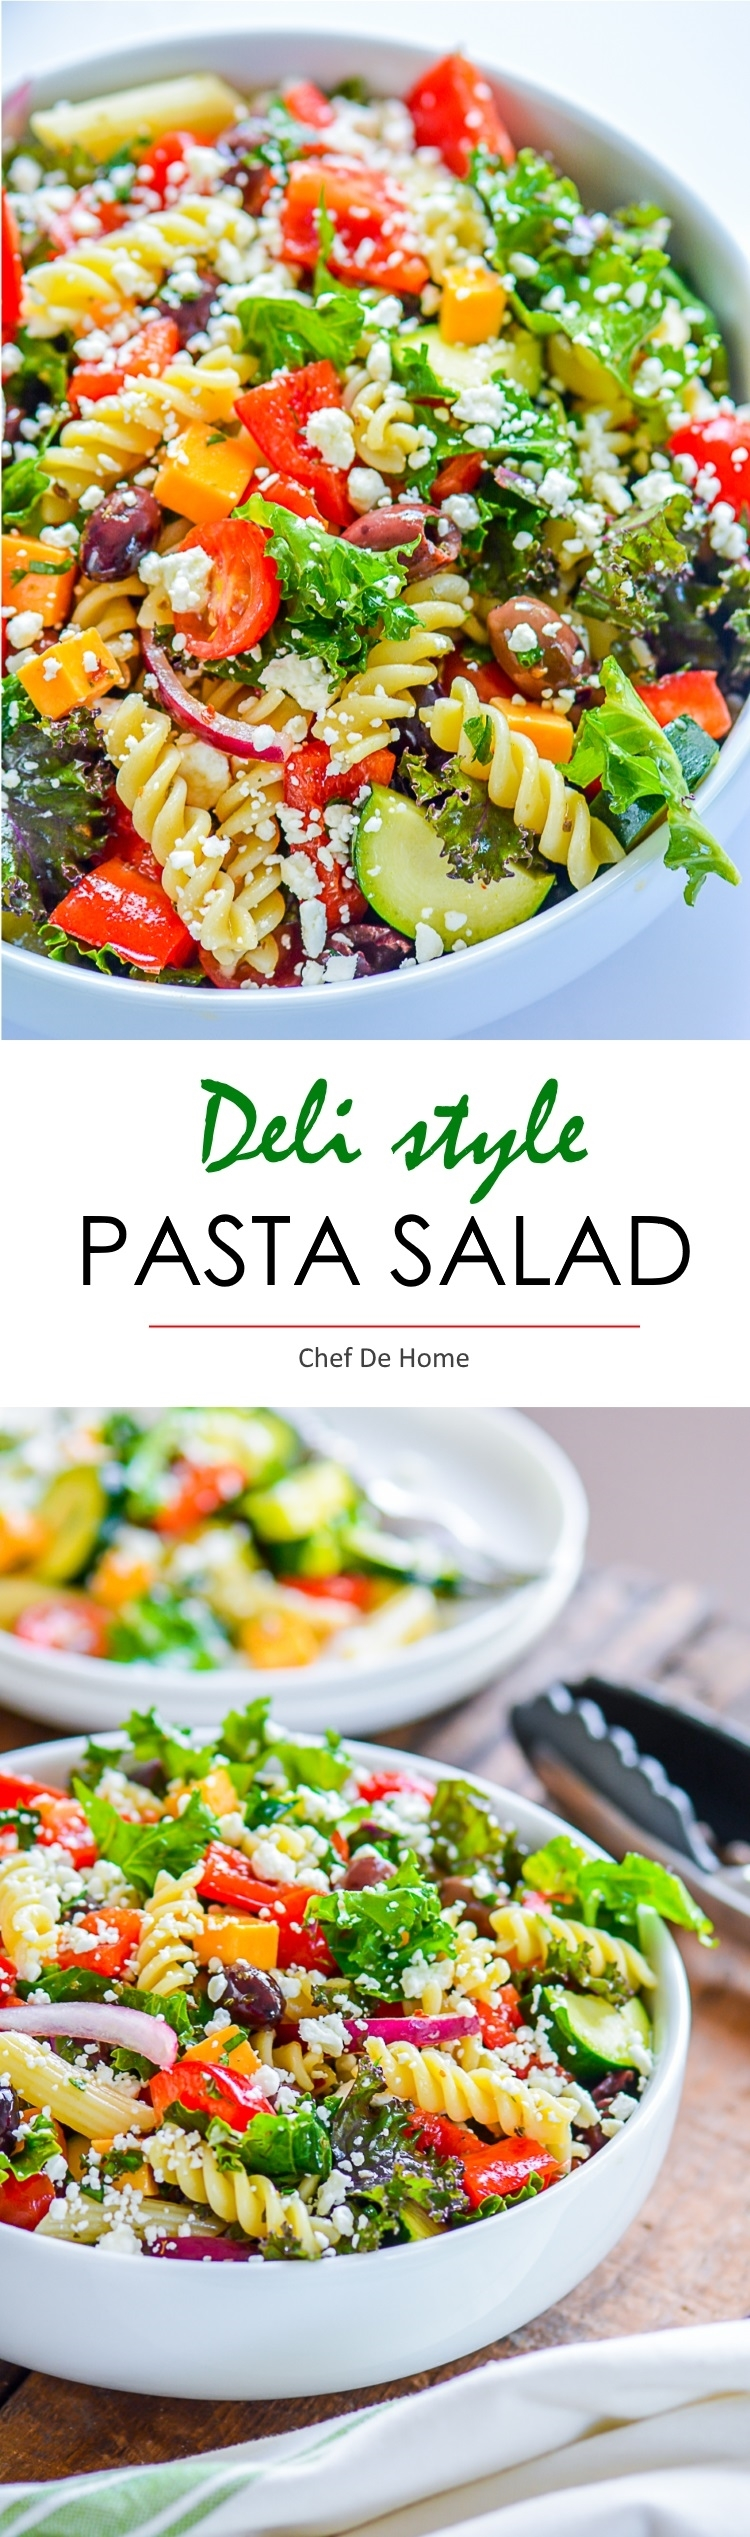 Deli style easy and healthy pasta salad with crunchy vegetarian and healthy touch of kale | chefdehome.com